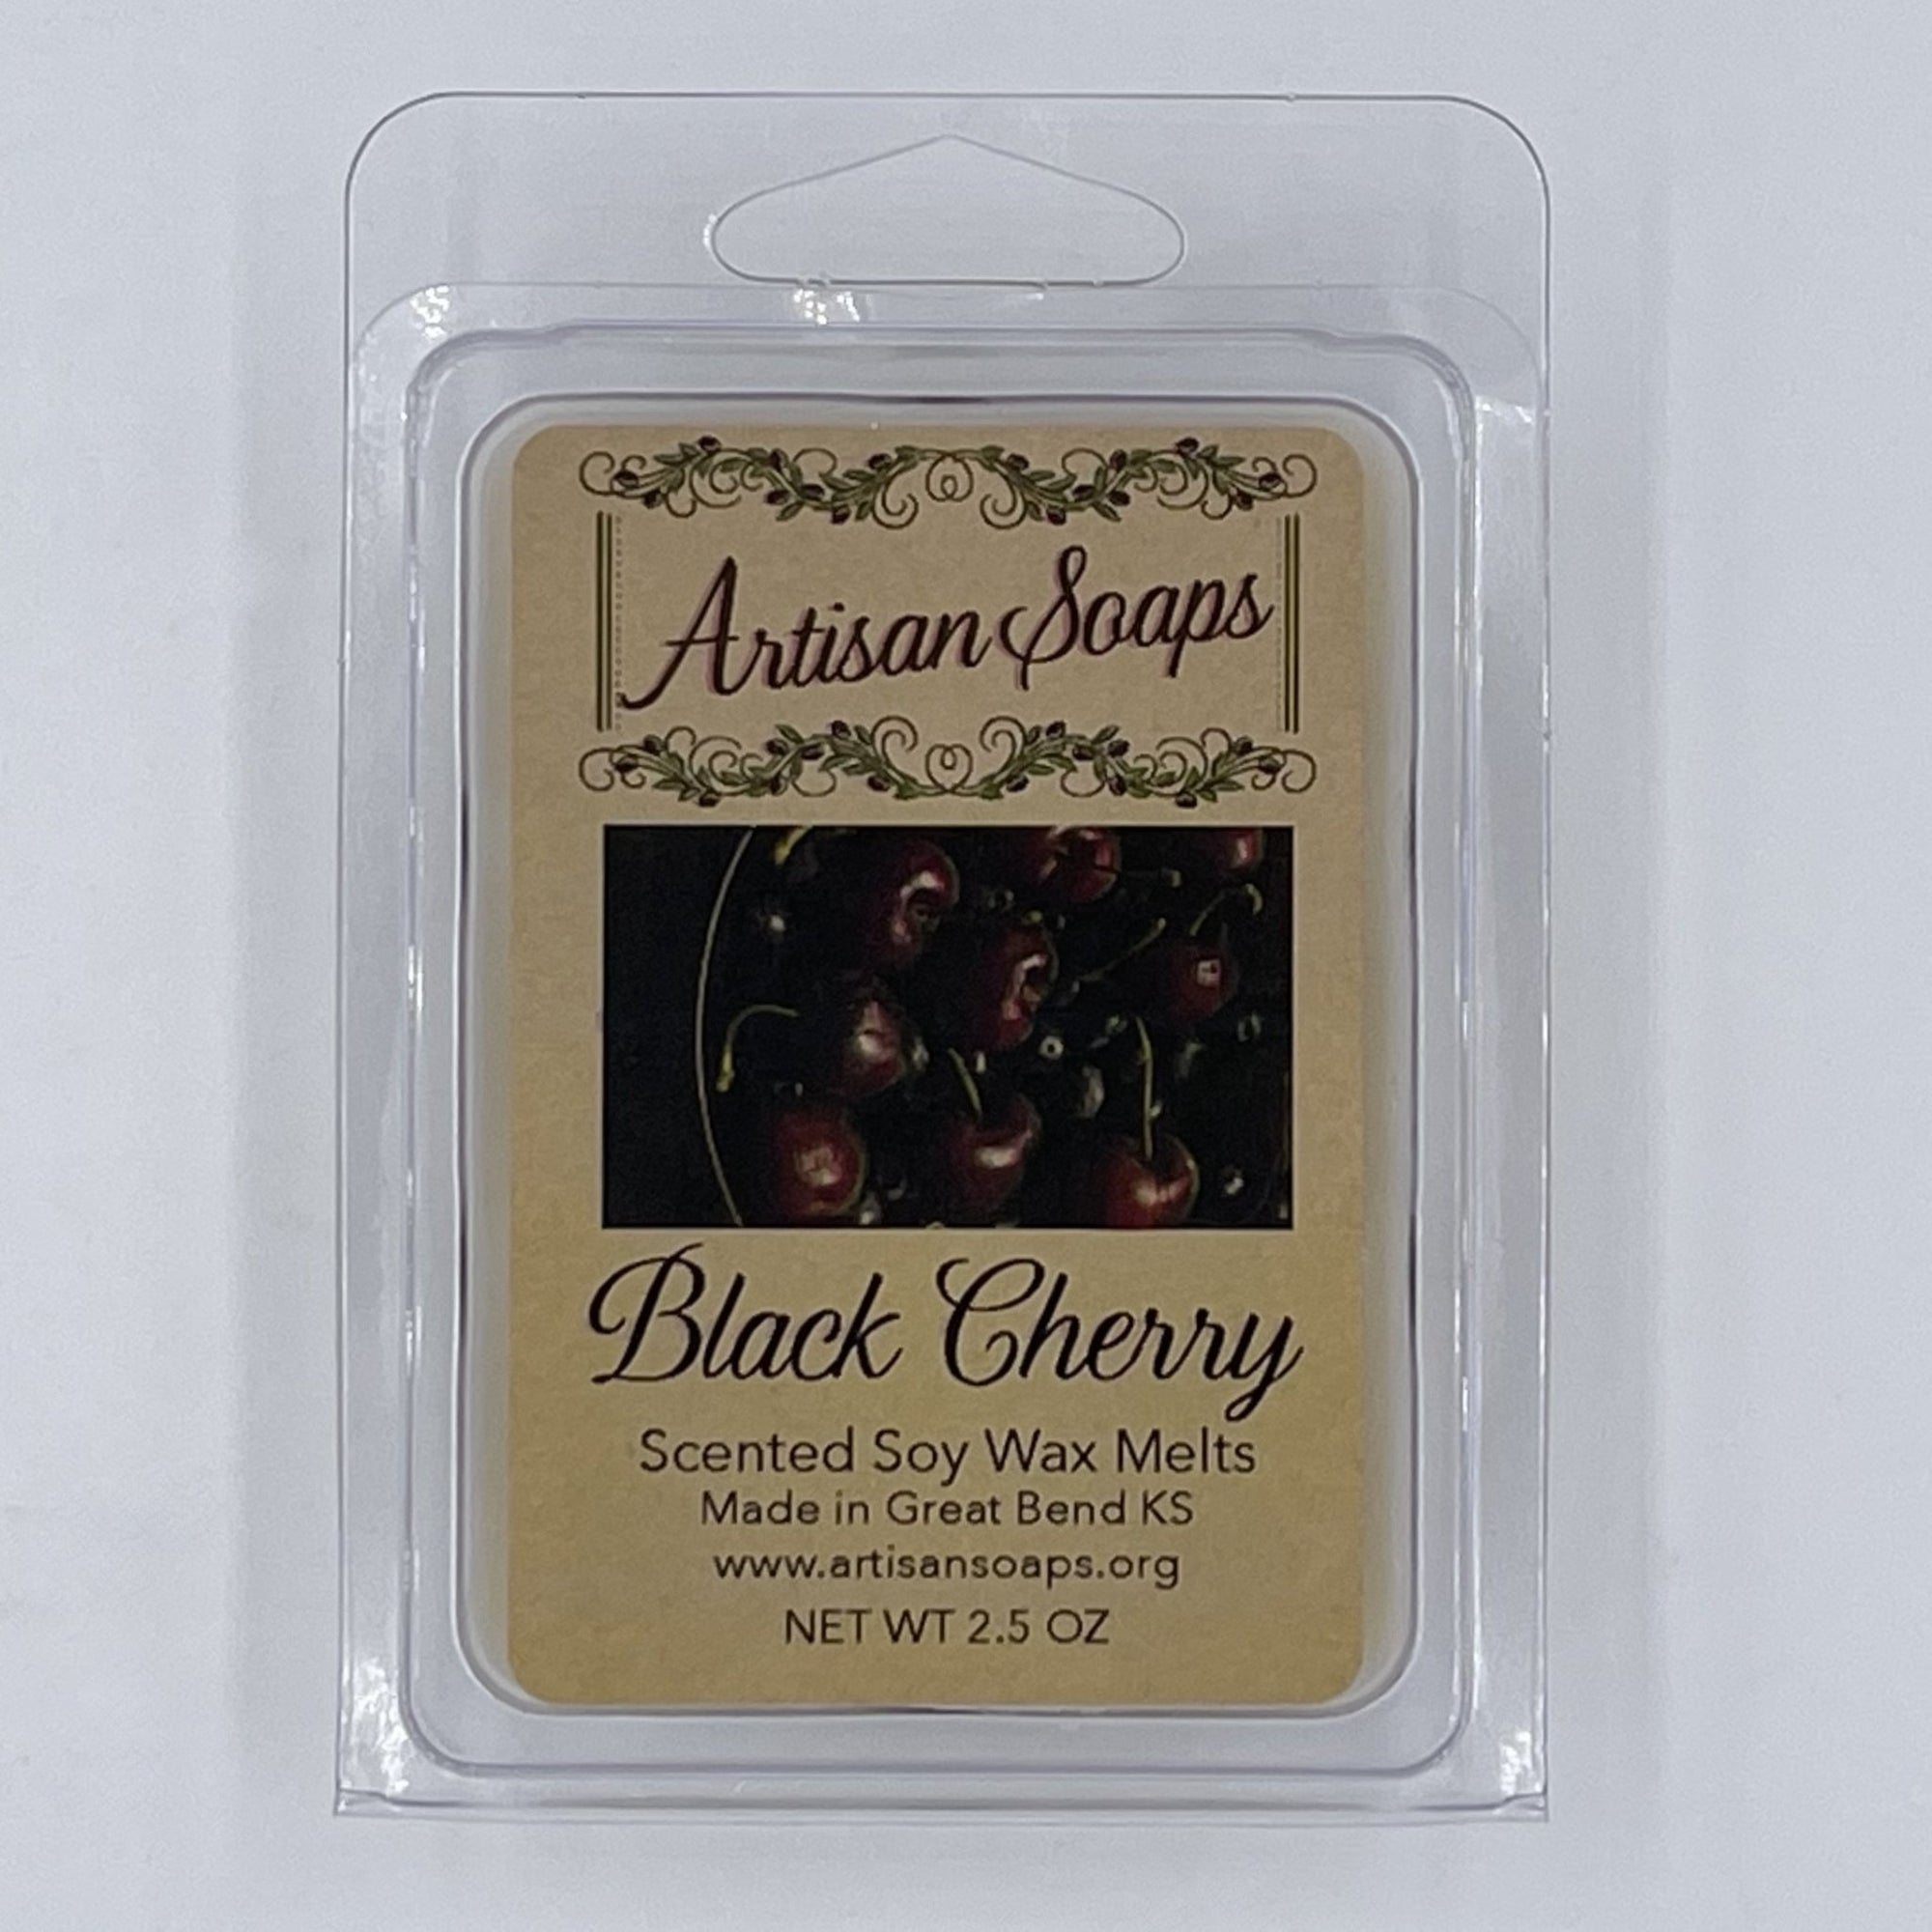 Black Cherry Soy Wax Melts - Artisan Soaps